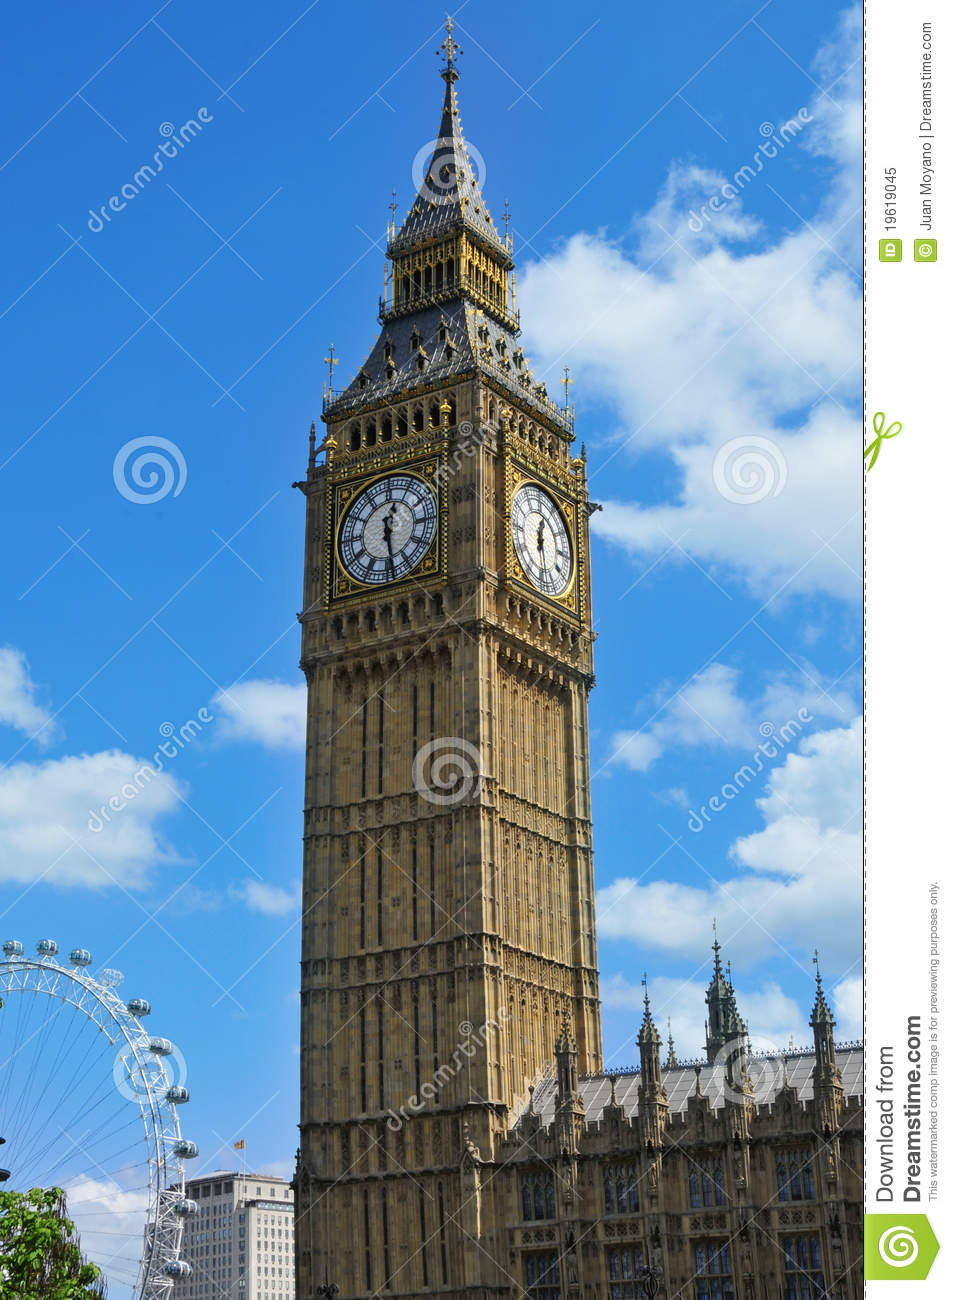 Largs United Kingdom  city photos gallery : Big Ben In London, United Kingdom Editorial Image Image: 19619045